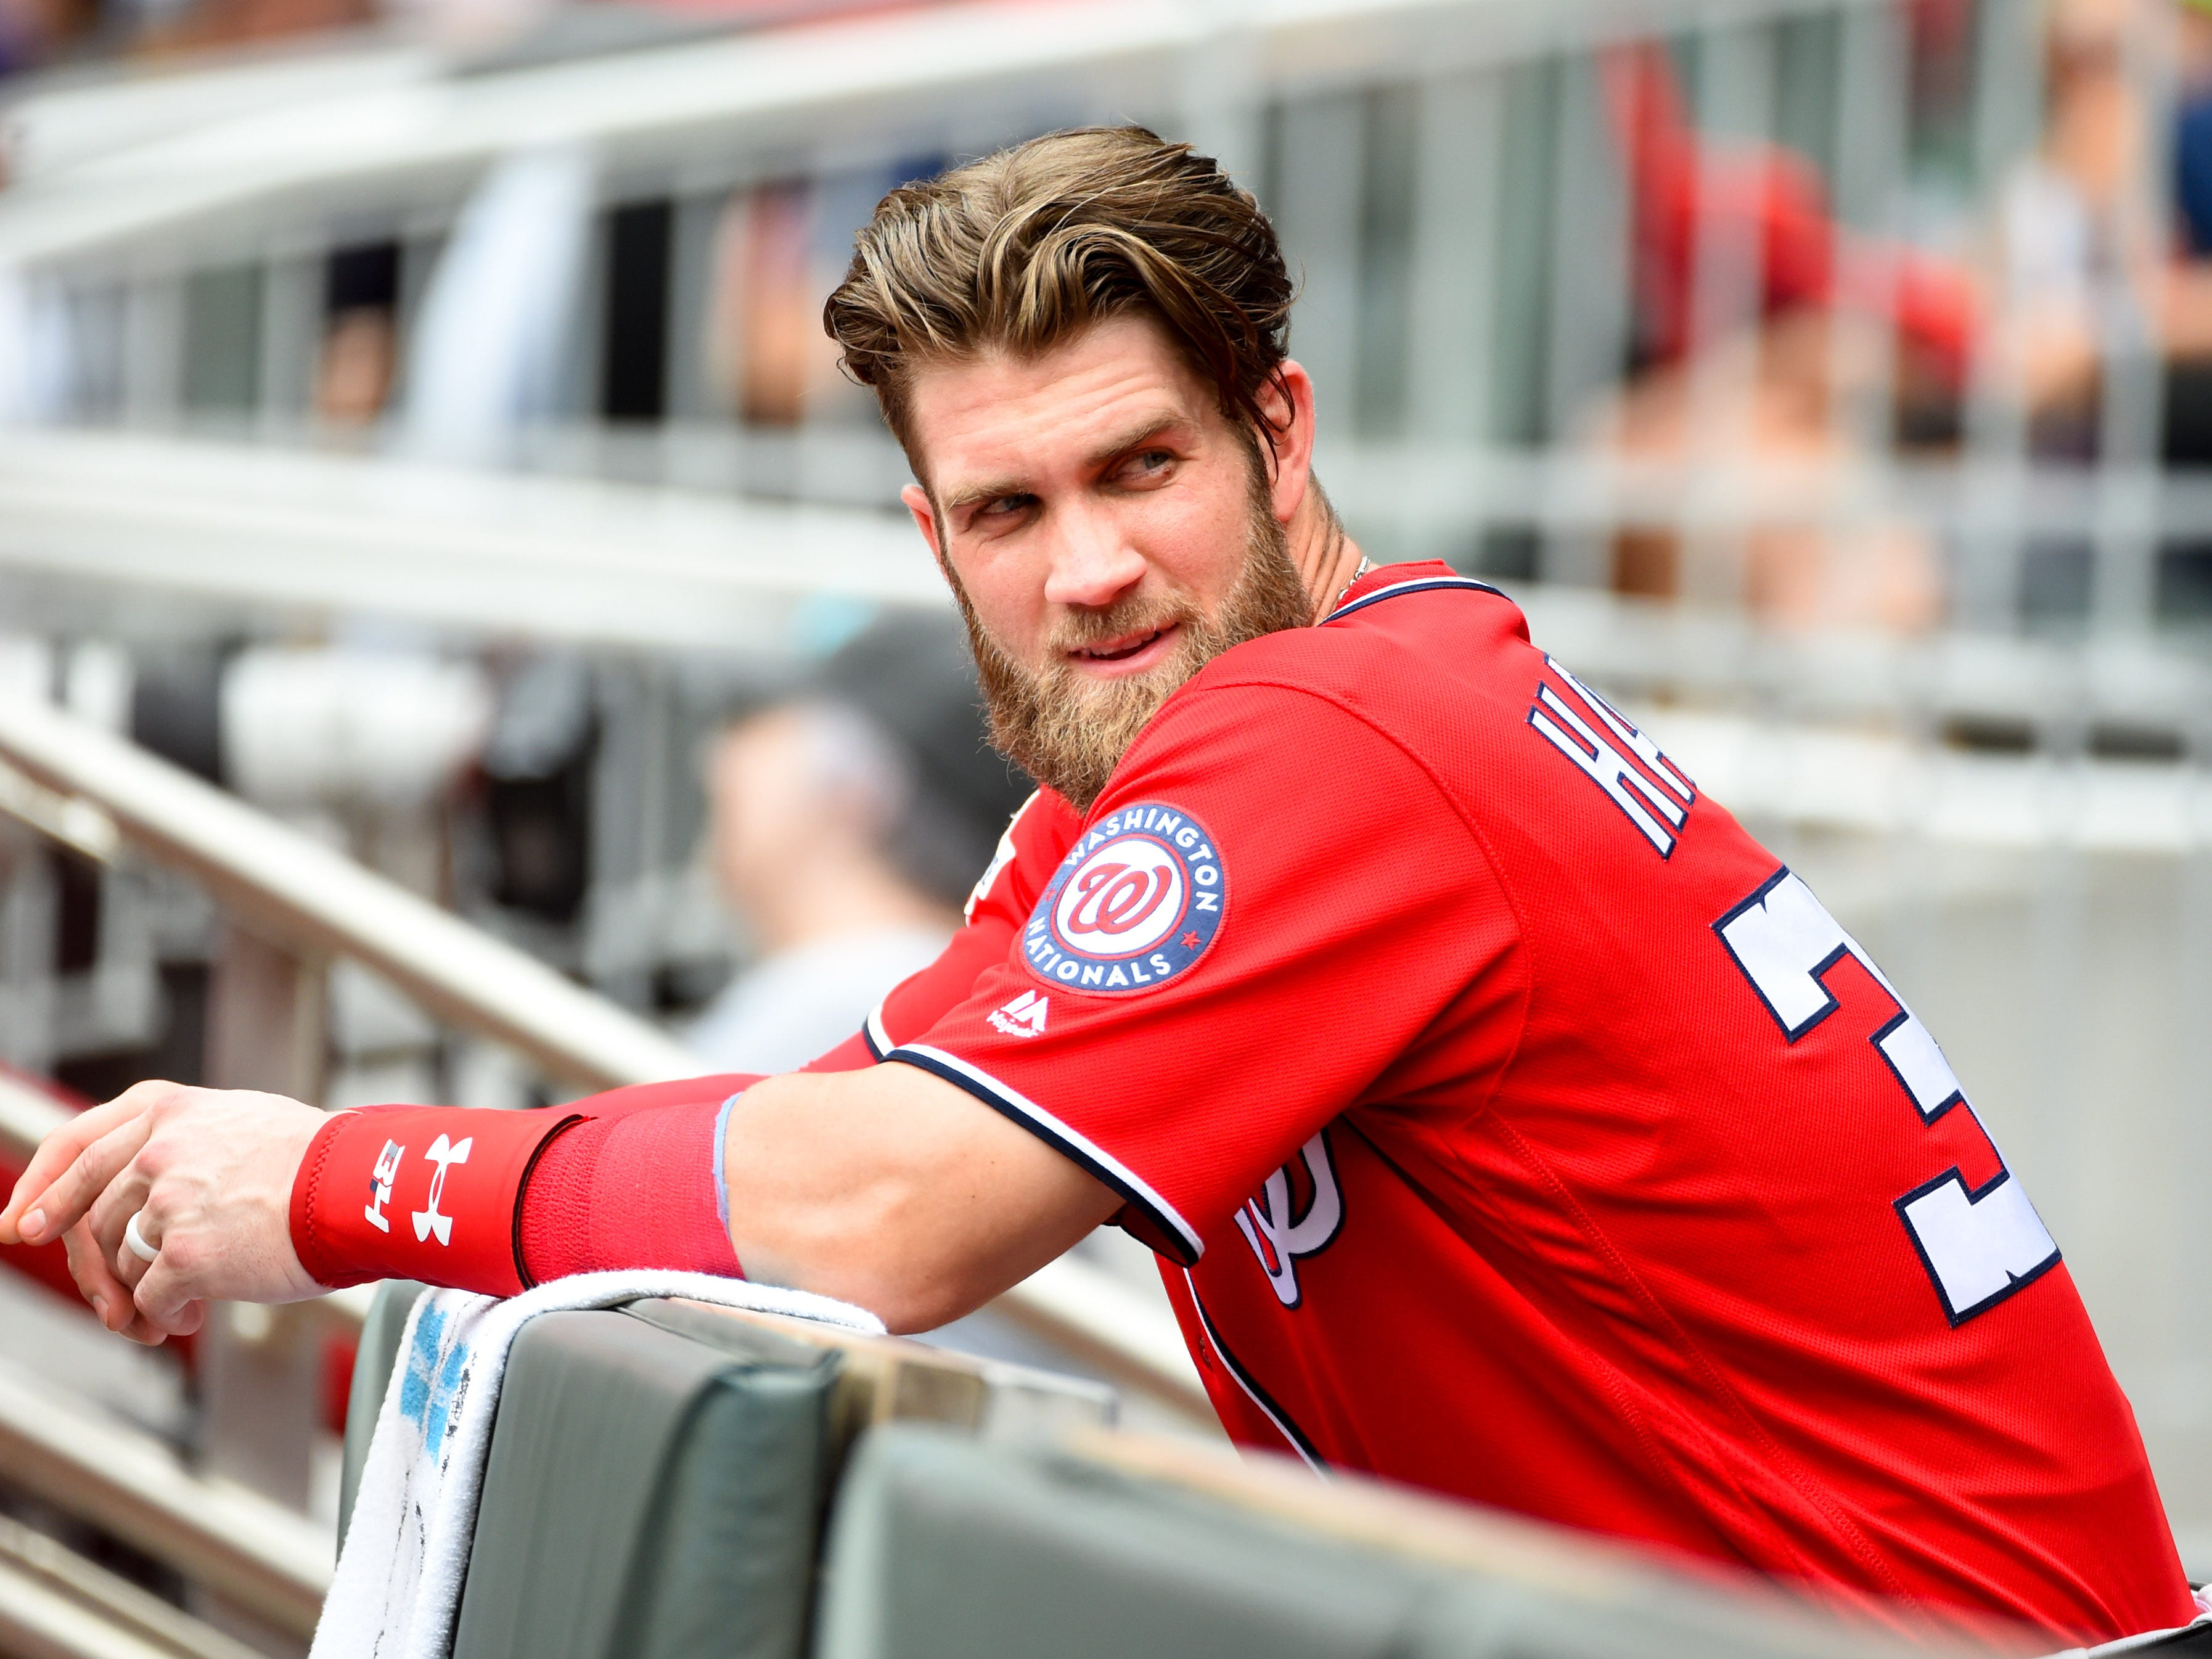 Bryce Harper (26, OF, Nationals)